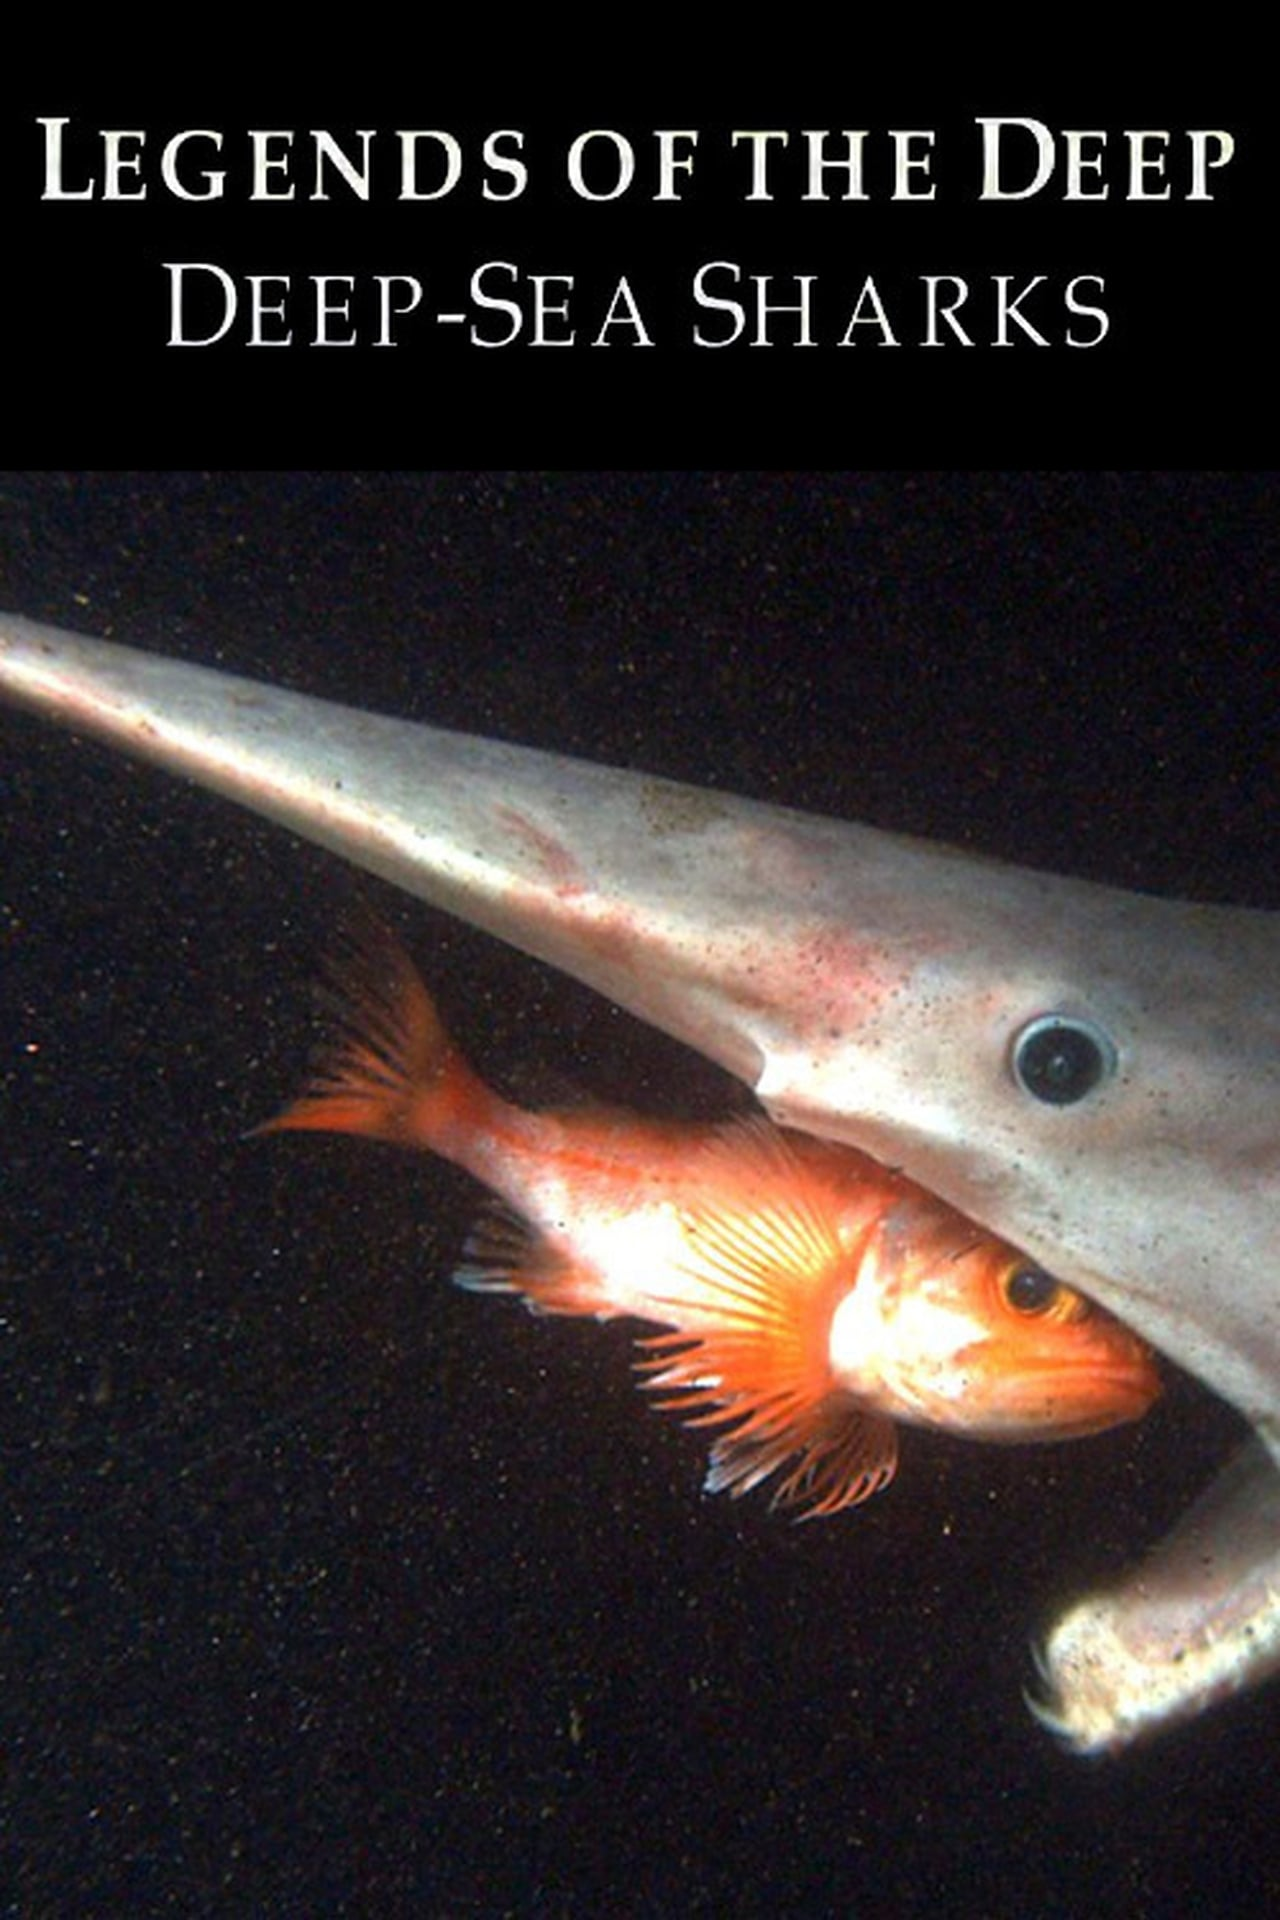 Legends of the Deep: Deep Sea Sharks